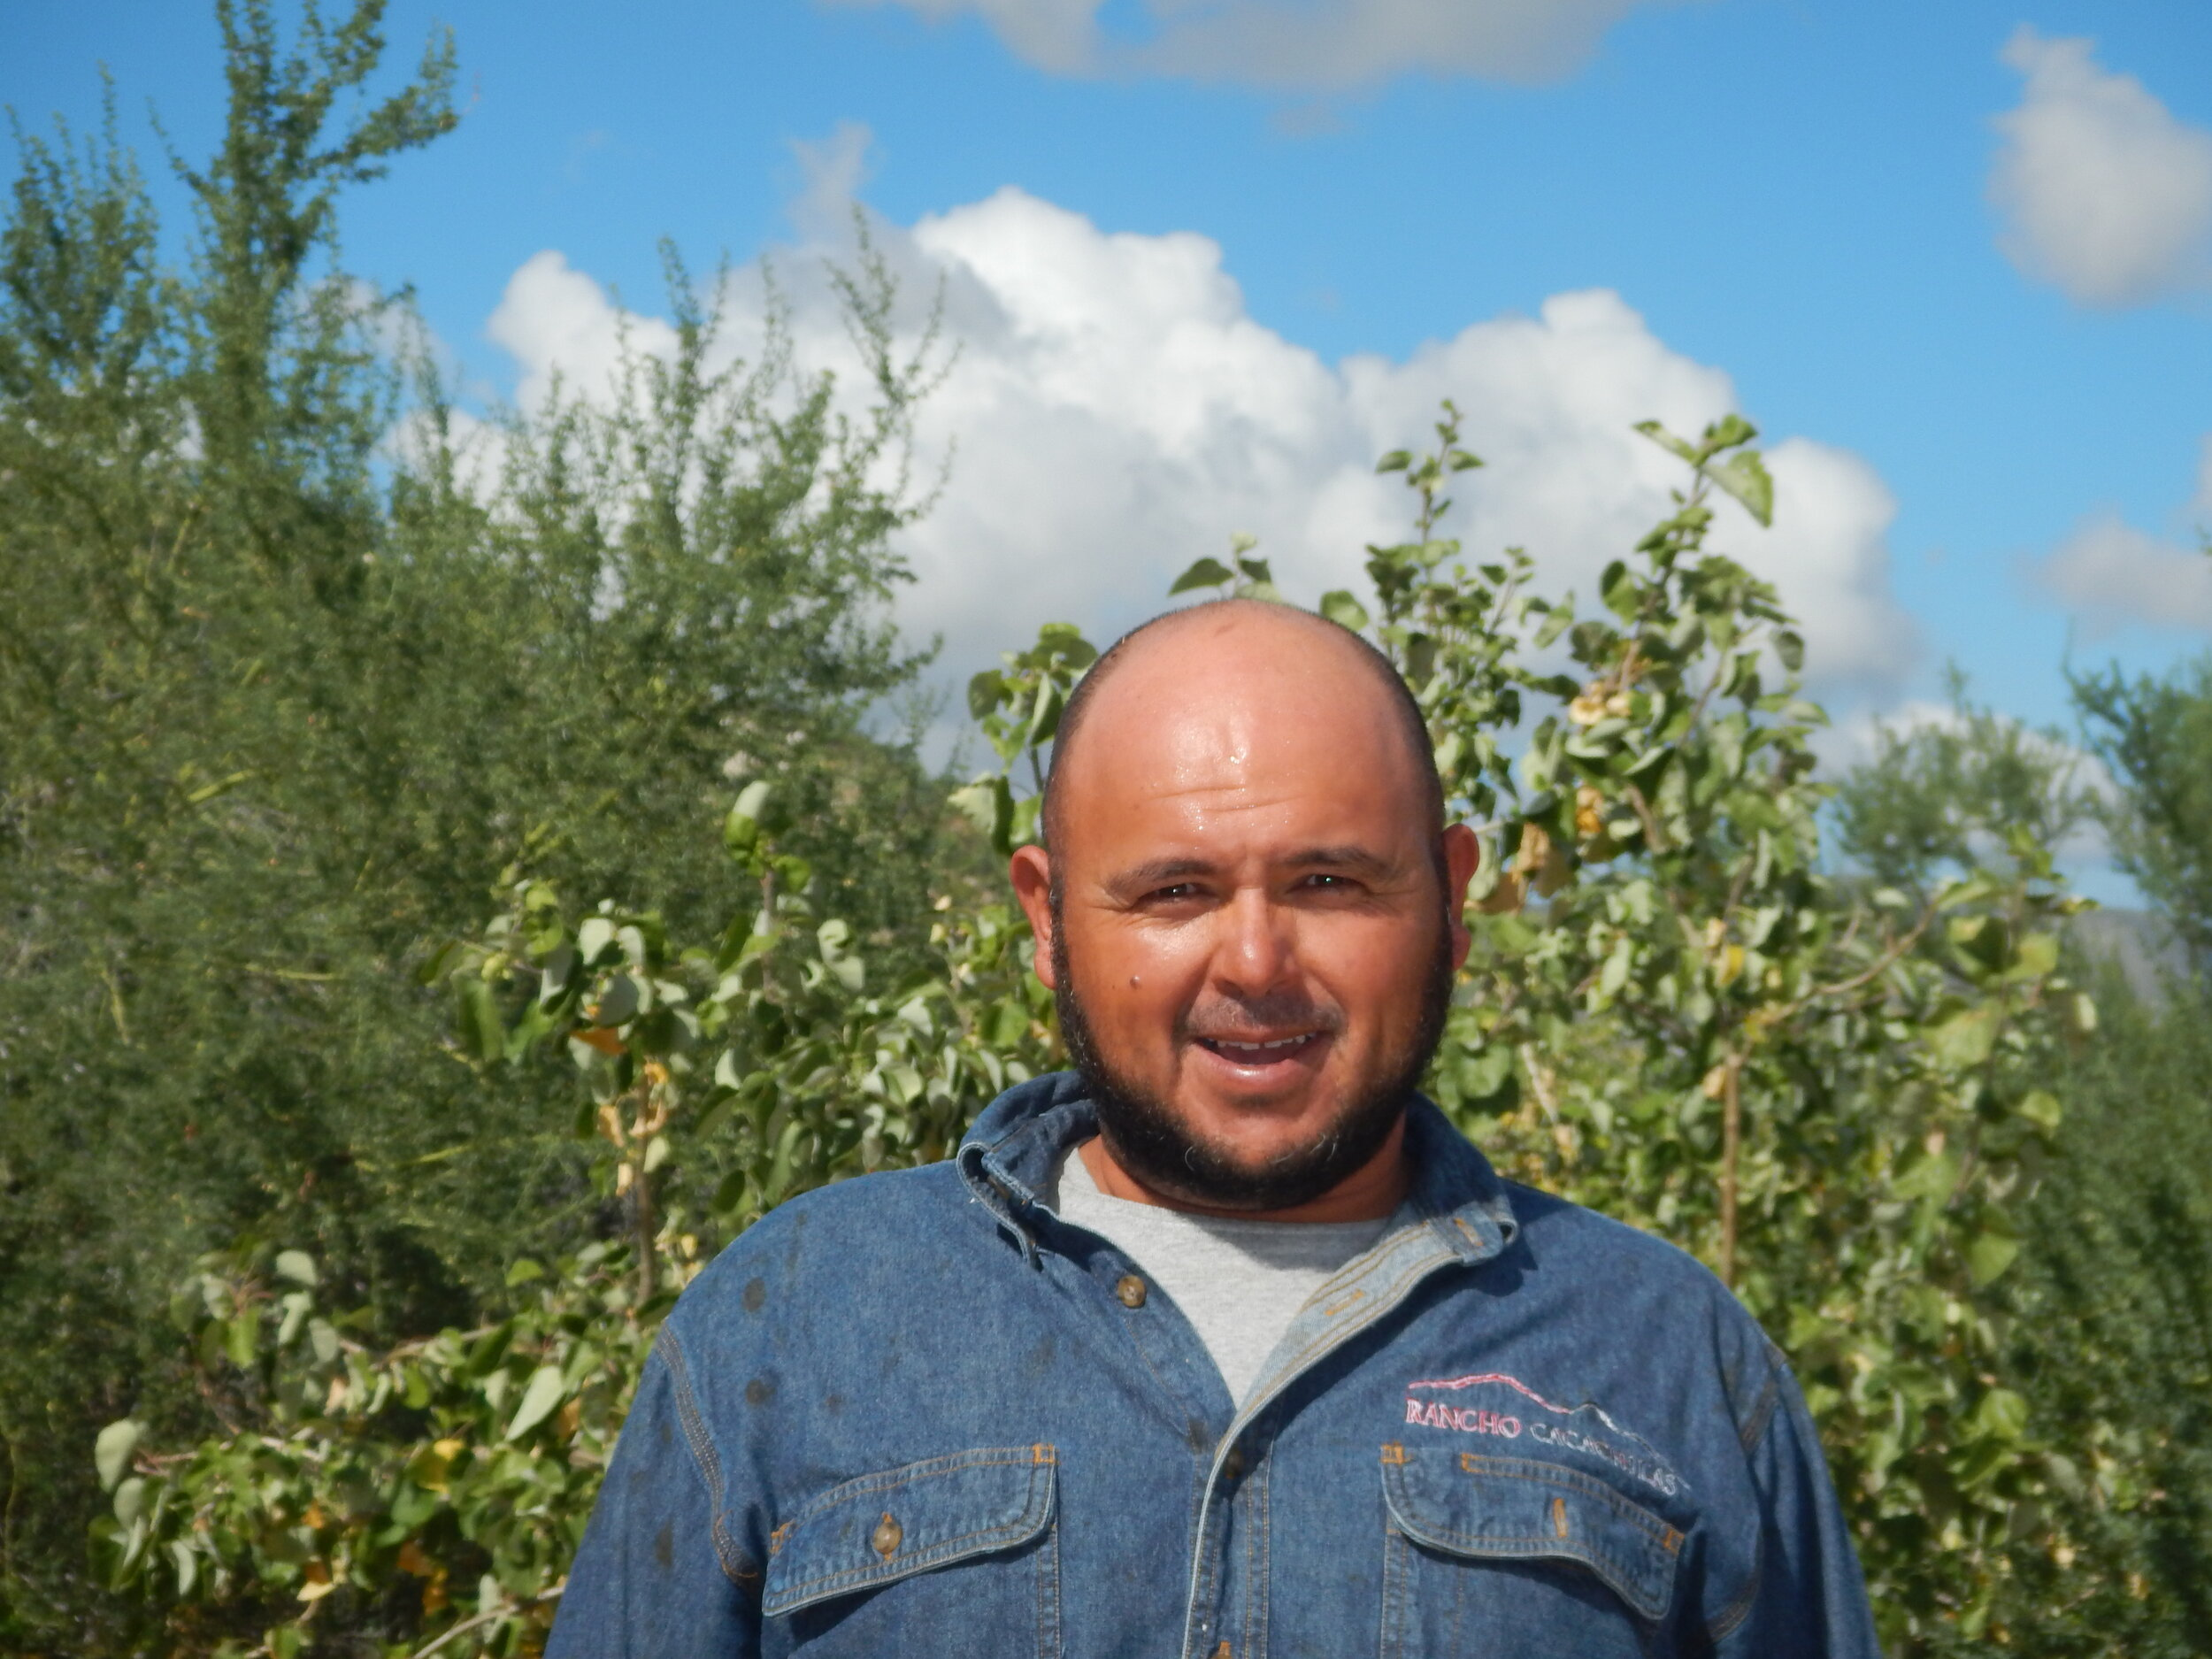 Francisco Leon   A vital member of the exploration team. He also works at the Ranch as a trail builder. He started his trail building path starting with the iconic Santa Rosa Trail.